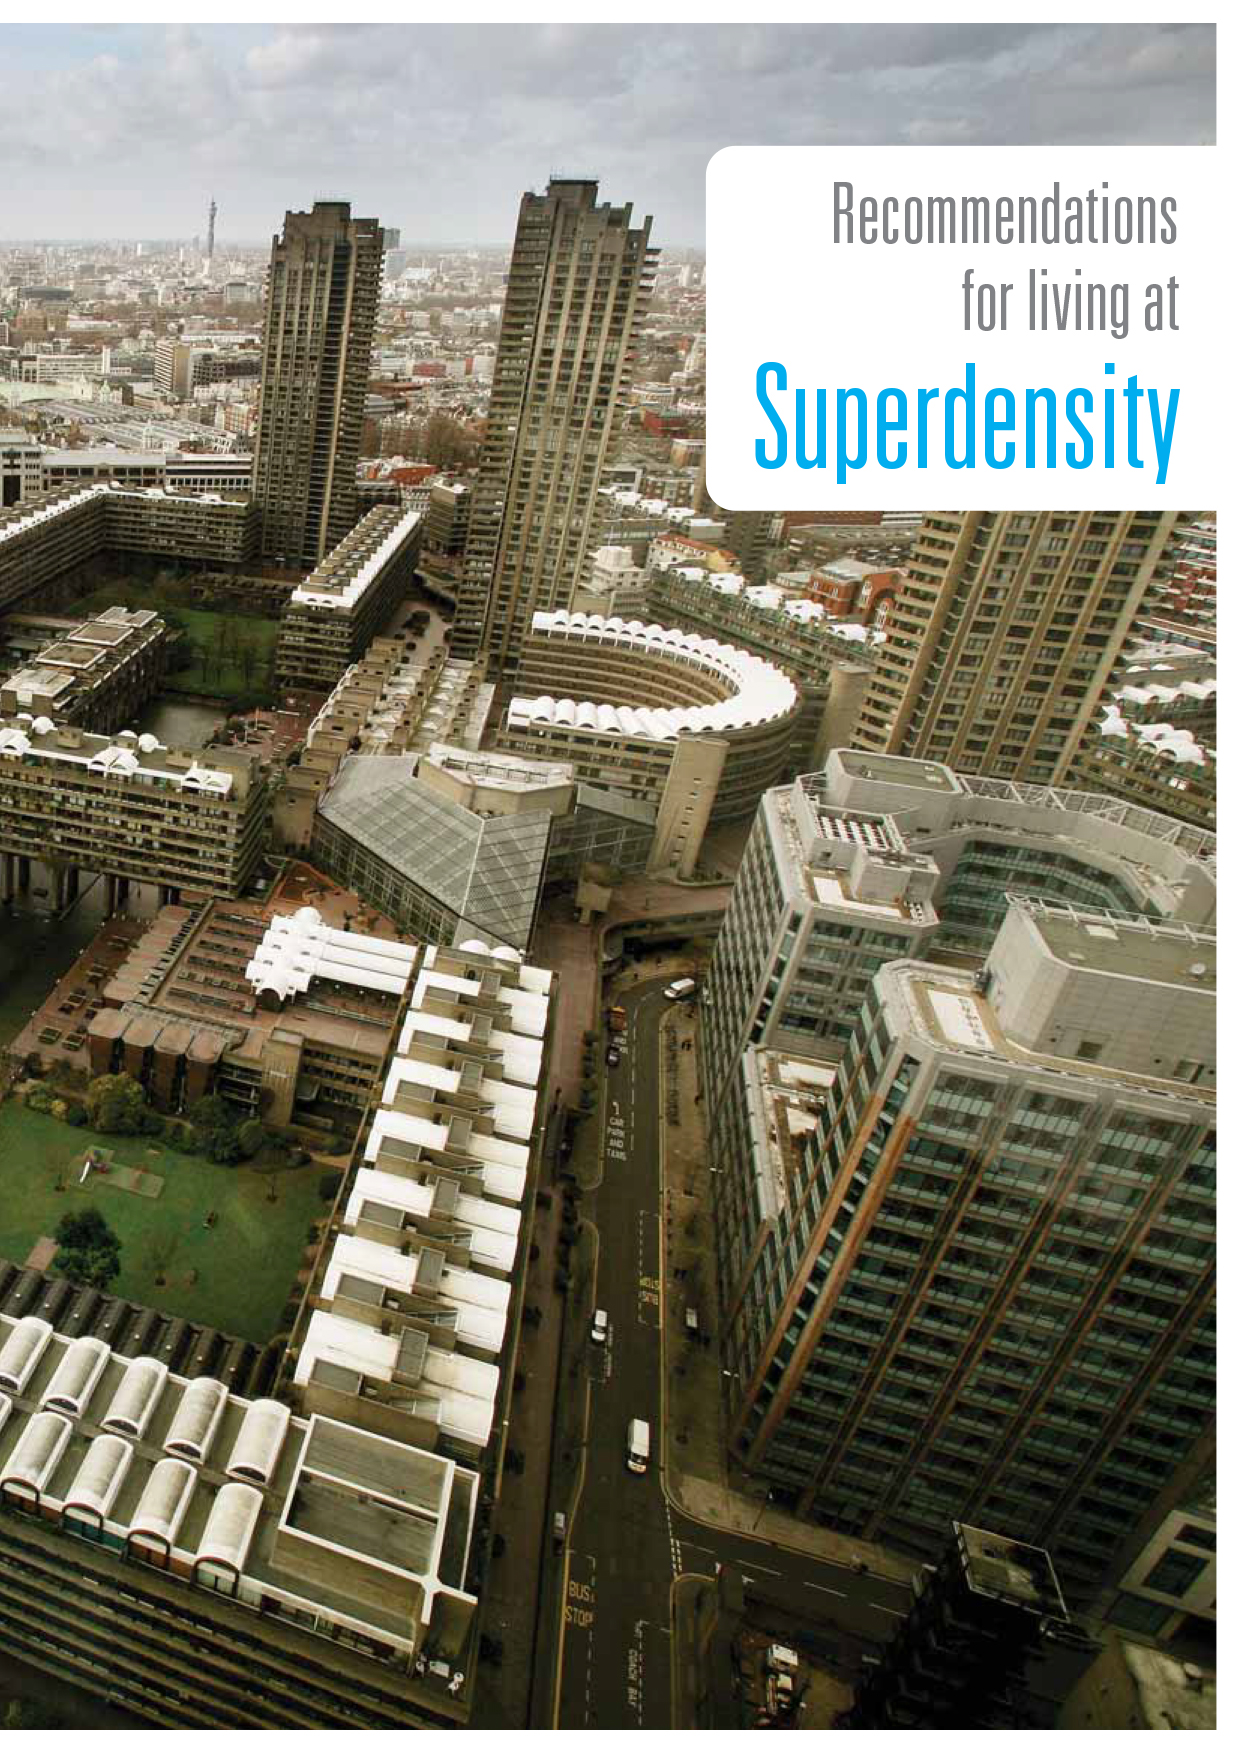 Recommendations for Living at Superdensity